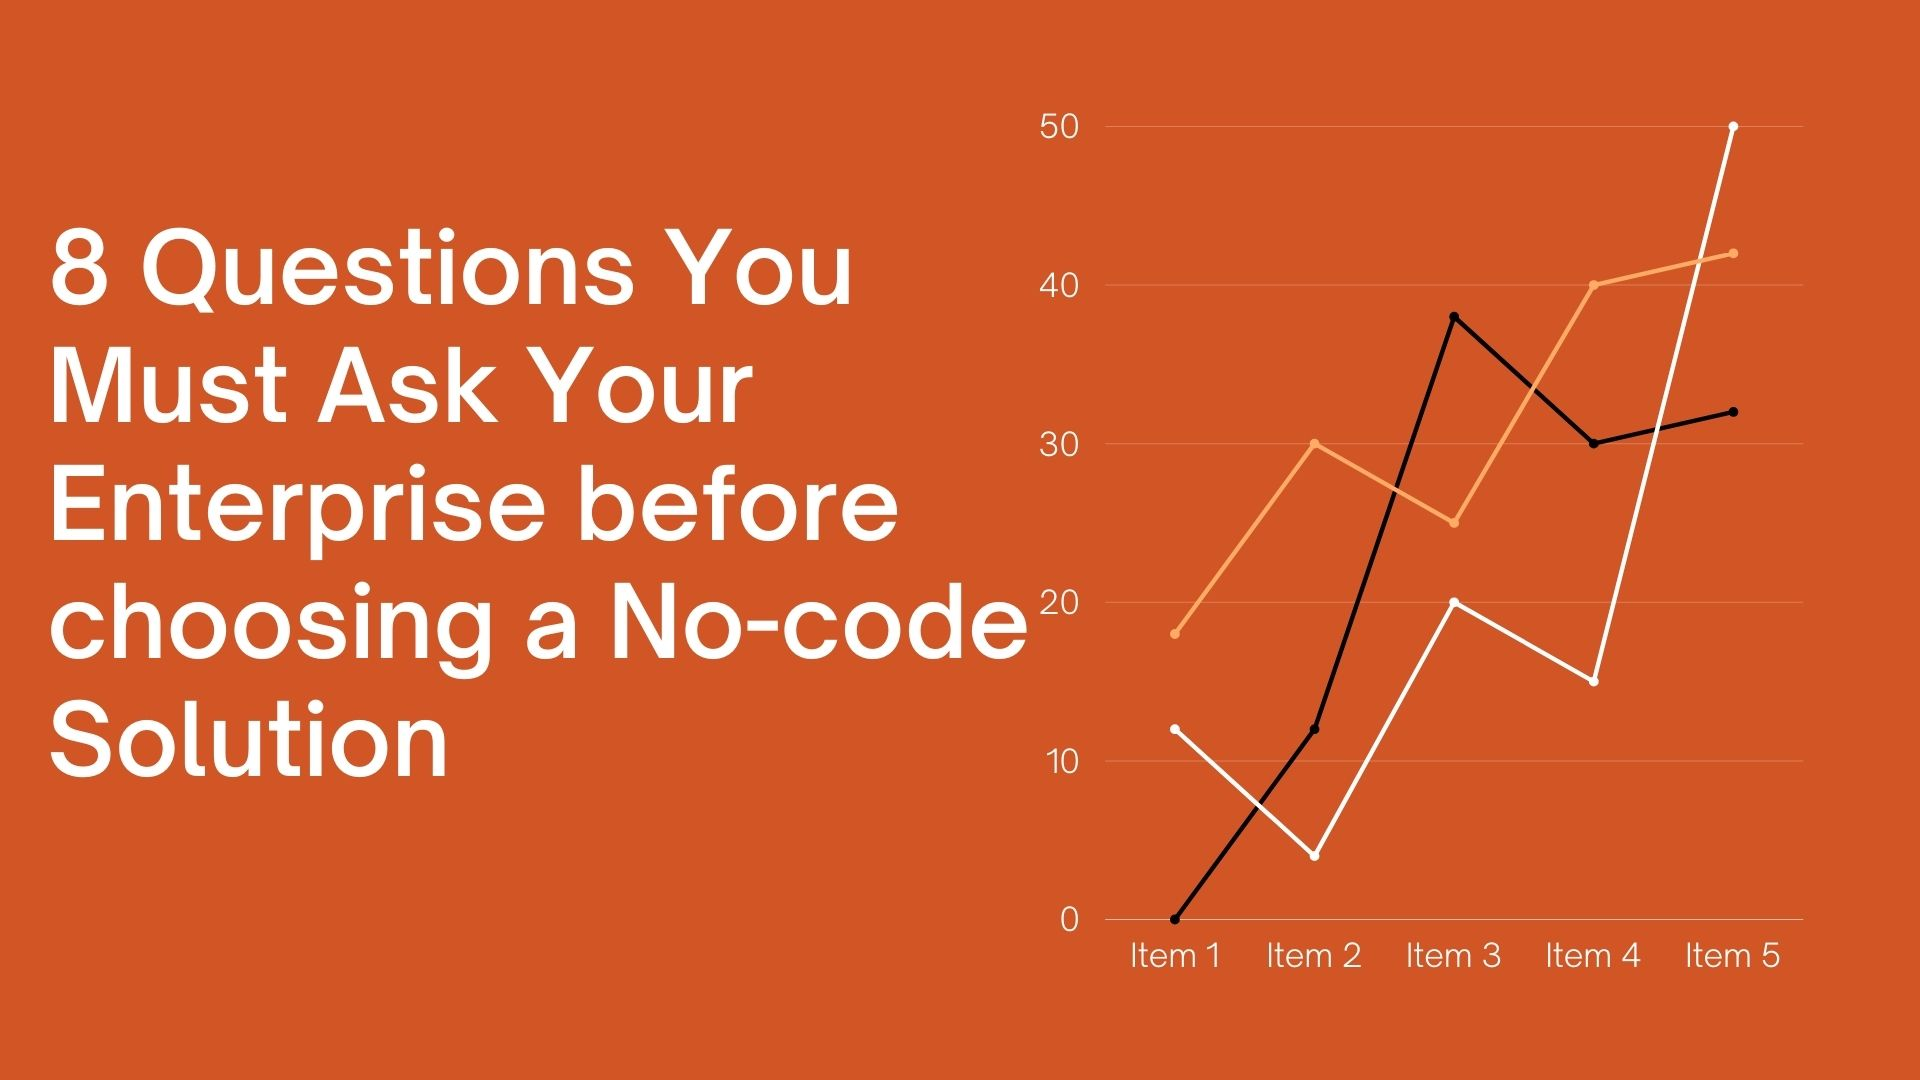 8 Questions You Must Ask Your Enterprise before choosing a No-code Solution